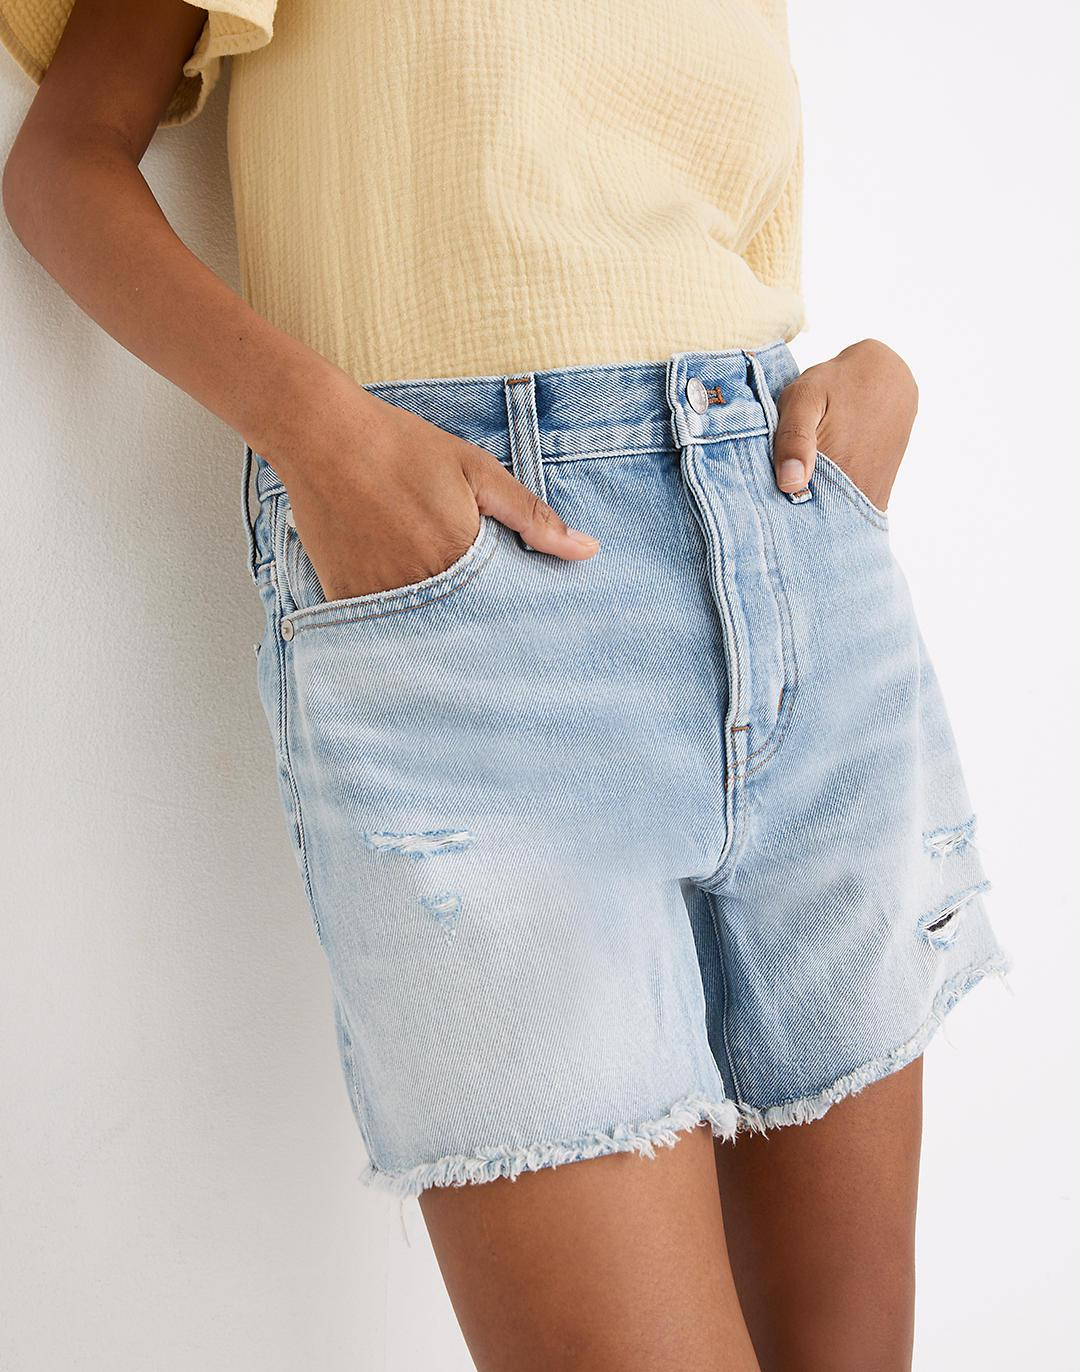 Relaxed Mid-Length Denim Shorts in Selton Wash: Ripped Edition 1